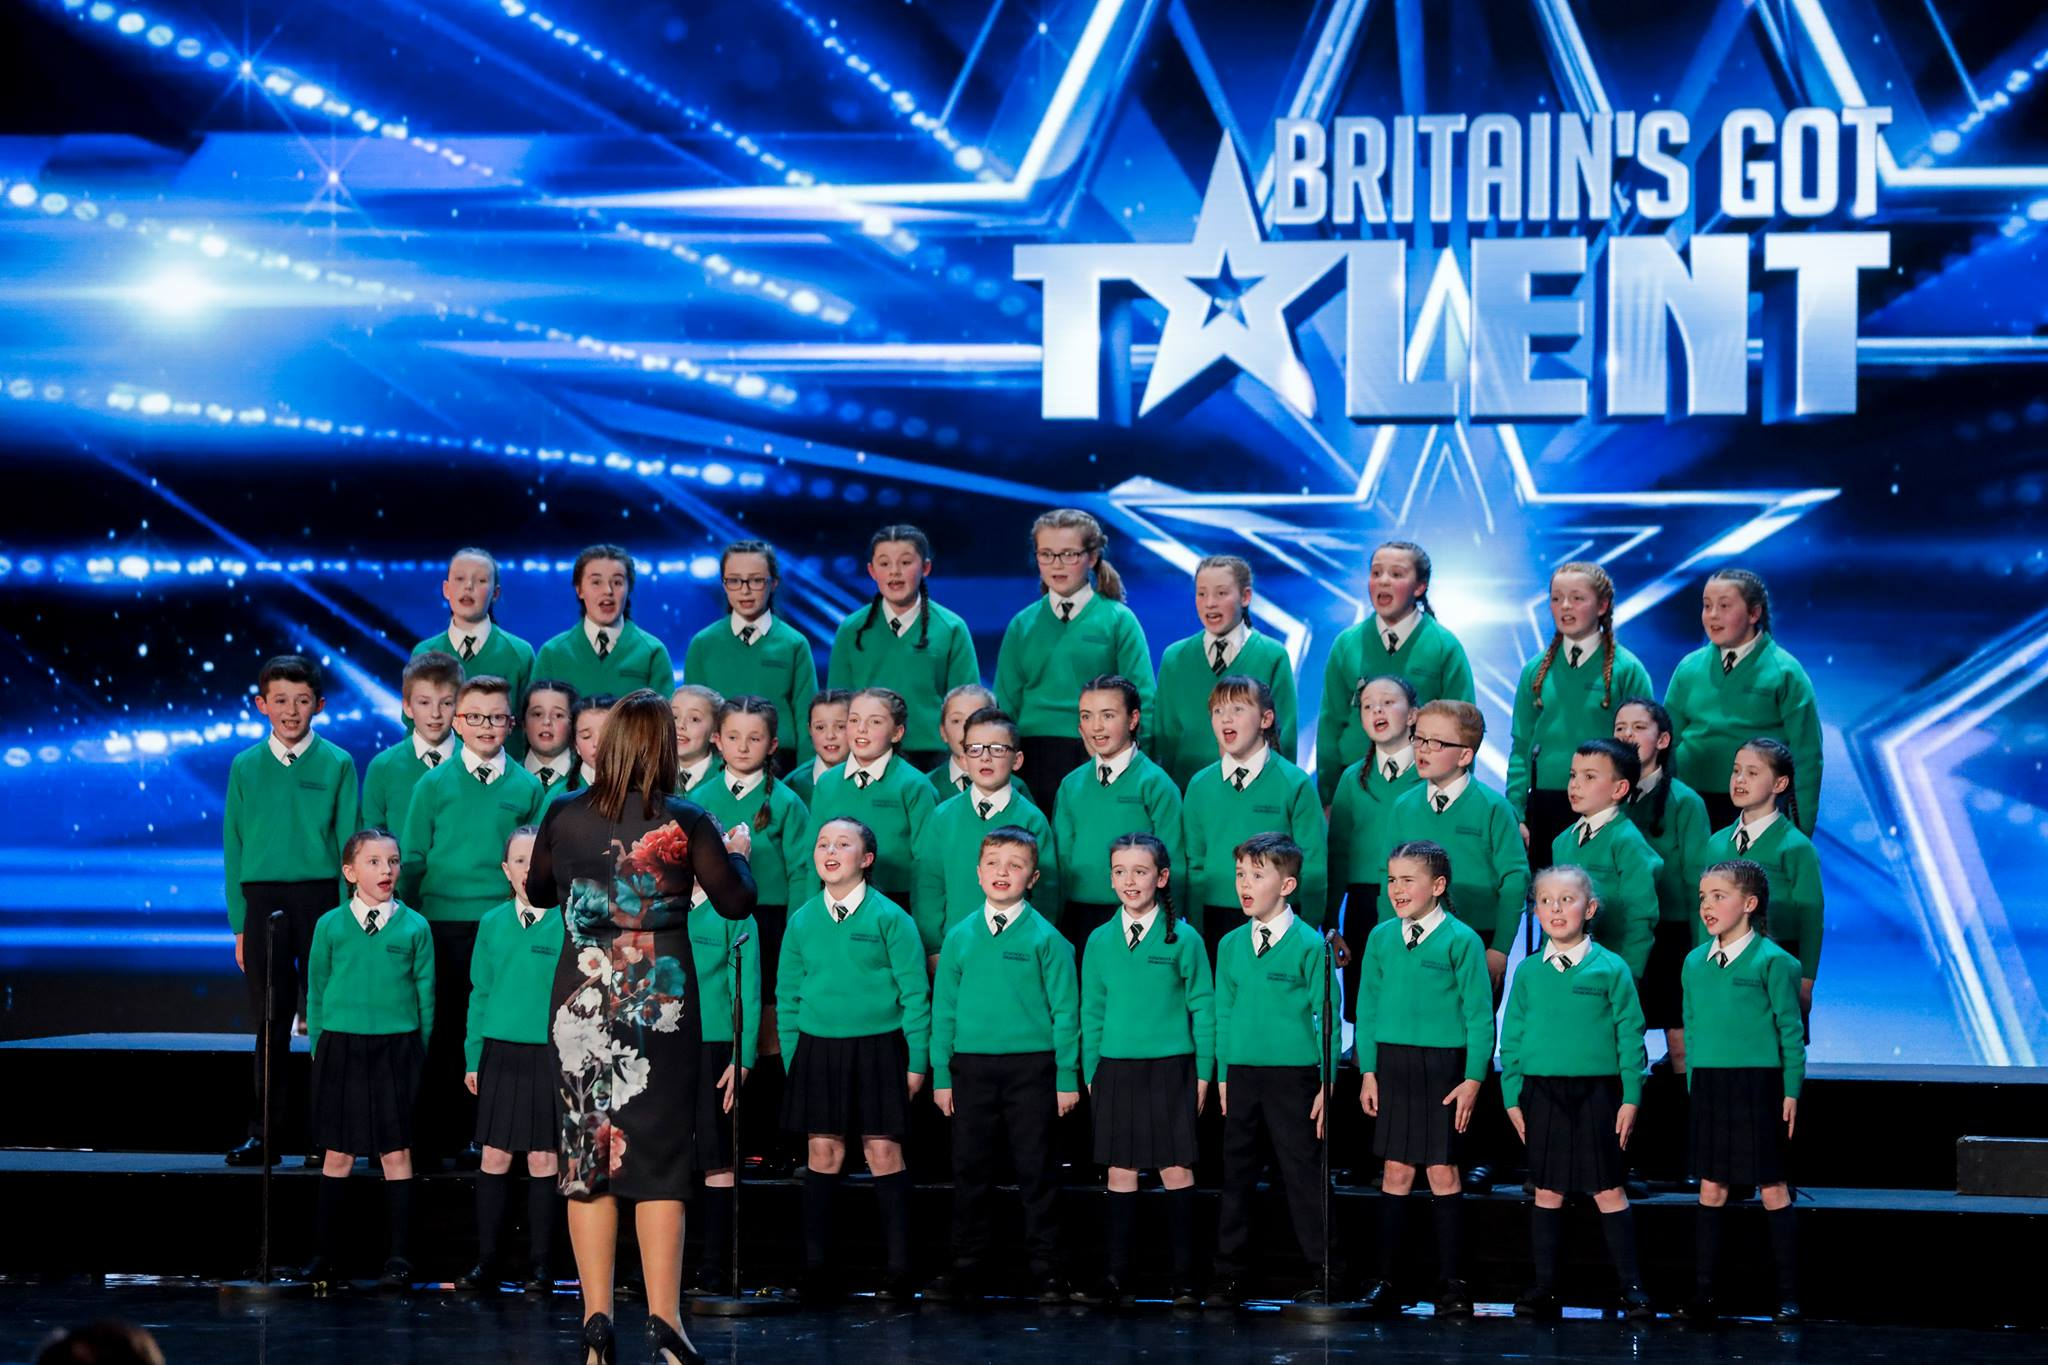 Young Co Down choir knocked out of BGT semi-final